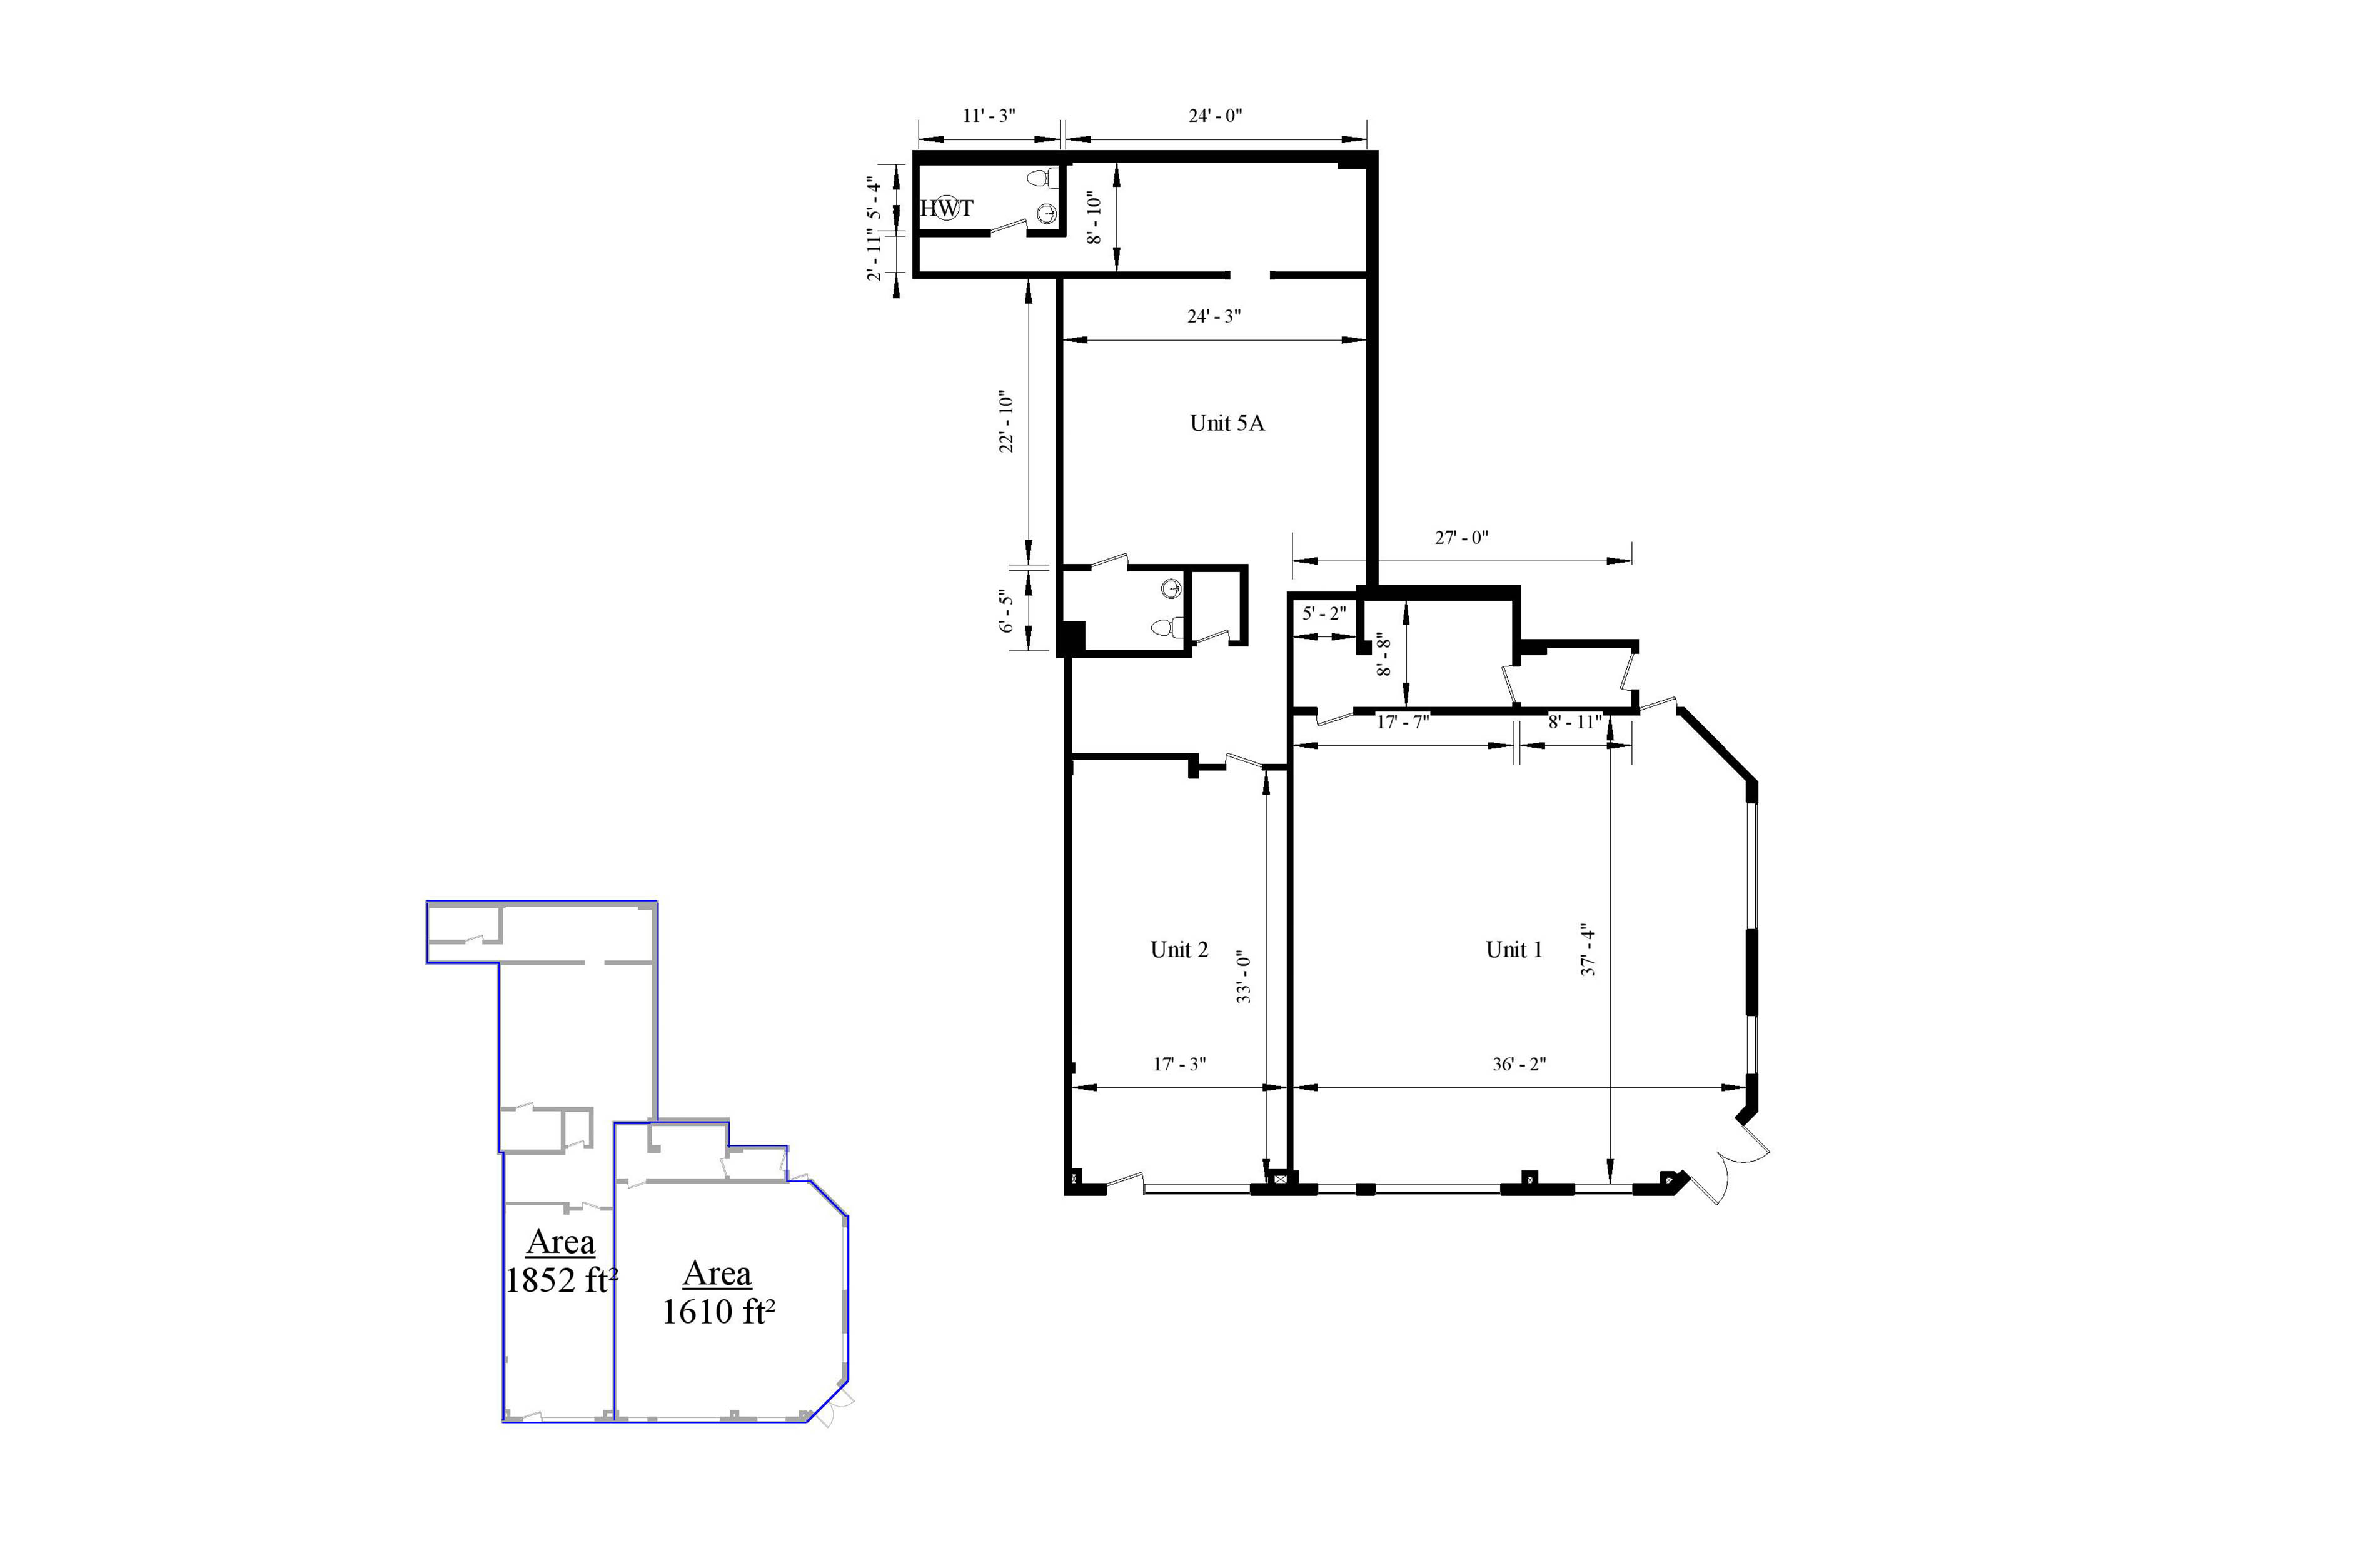 an AutoCad drawing of the floor plan and the Area Analysis plan for a three thousand, four-hundred and sixty-two square foot building.